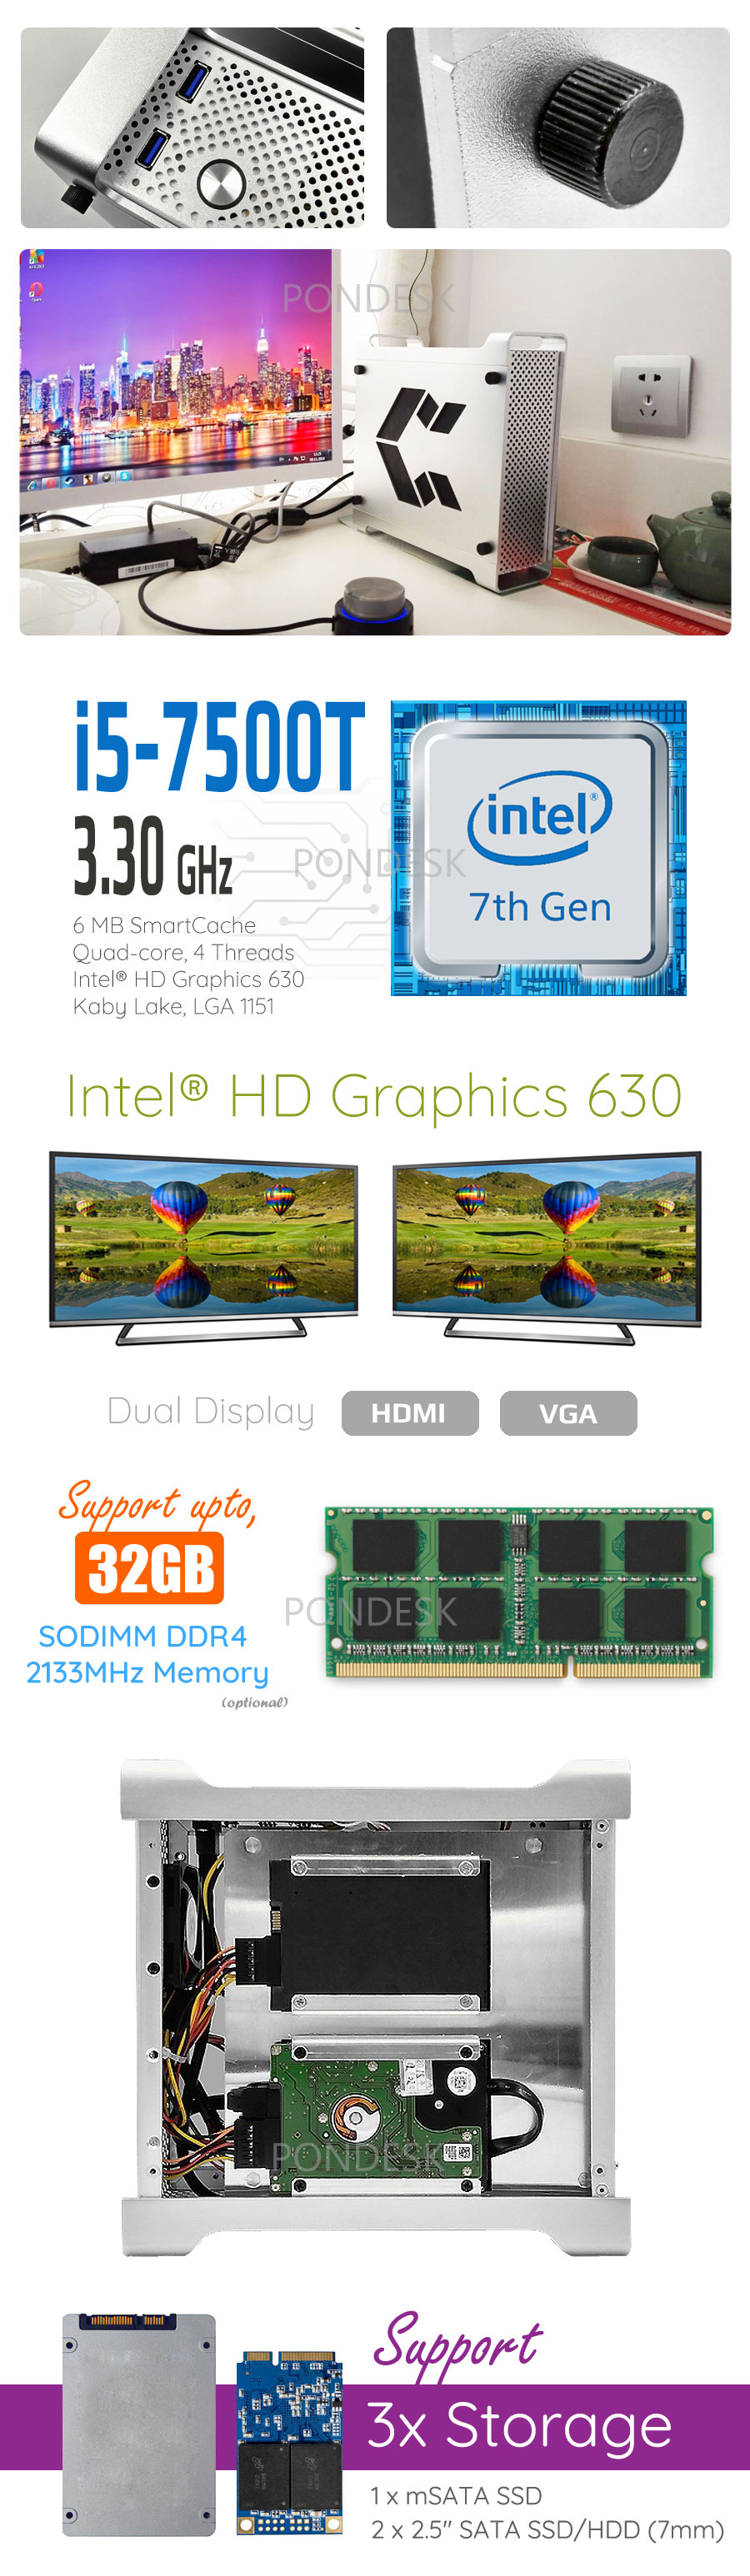 7th Gen Intel® i5-7500T Kaby Lake 3.3GHz HD 630 Mini Desktop - DTHO-006 | Image